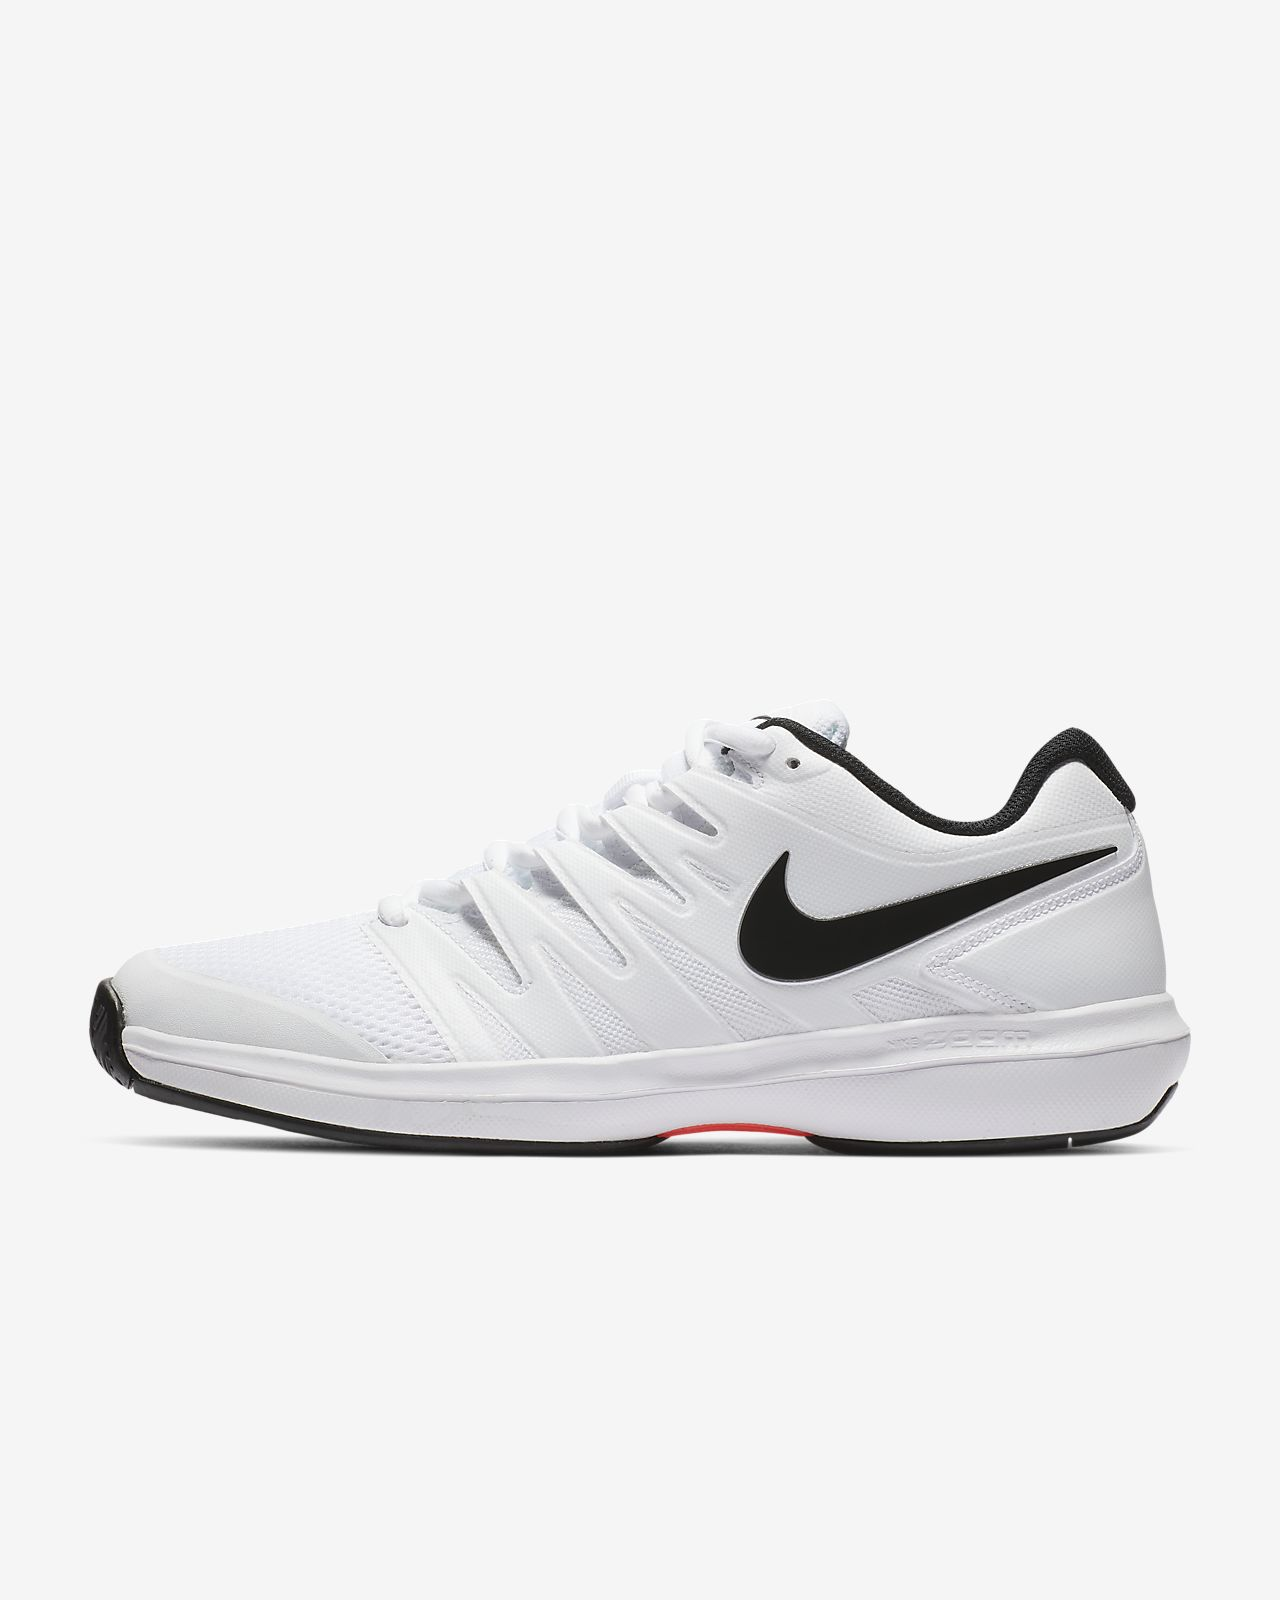 NikeCourt Air Zoom Prestige 男款硬地球場網球鞋